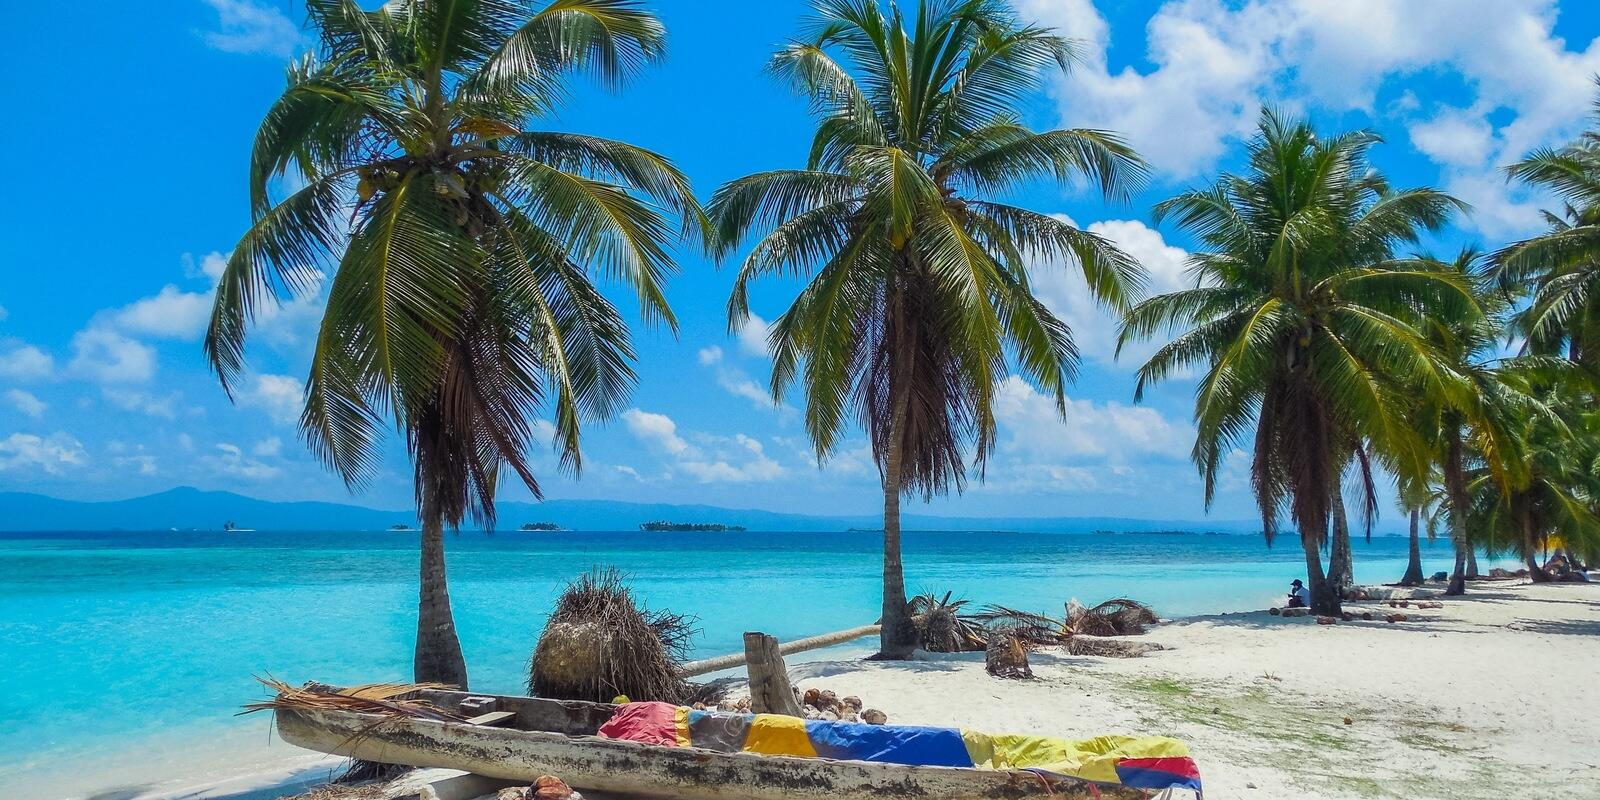 Spend an ALL INCLUSIVE holiday with us sailing in Carribean! (meals and beverage included)